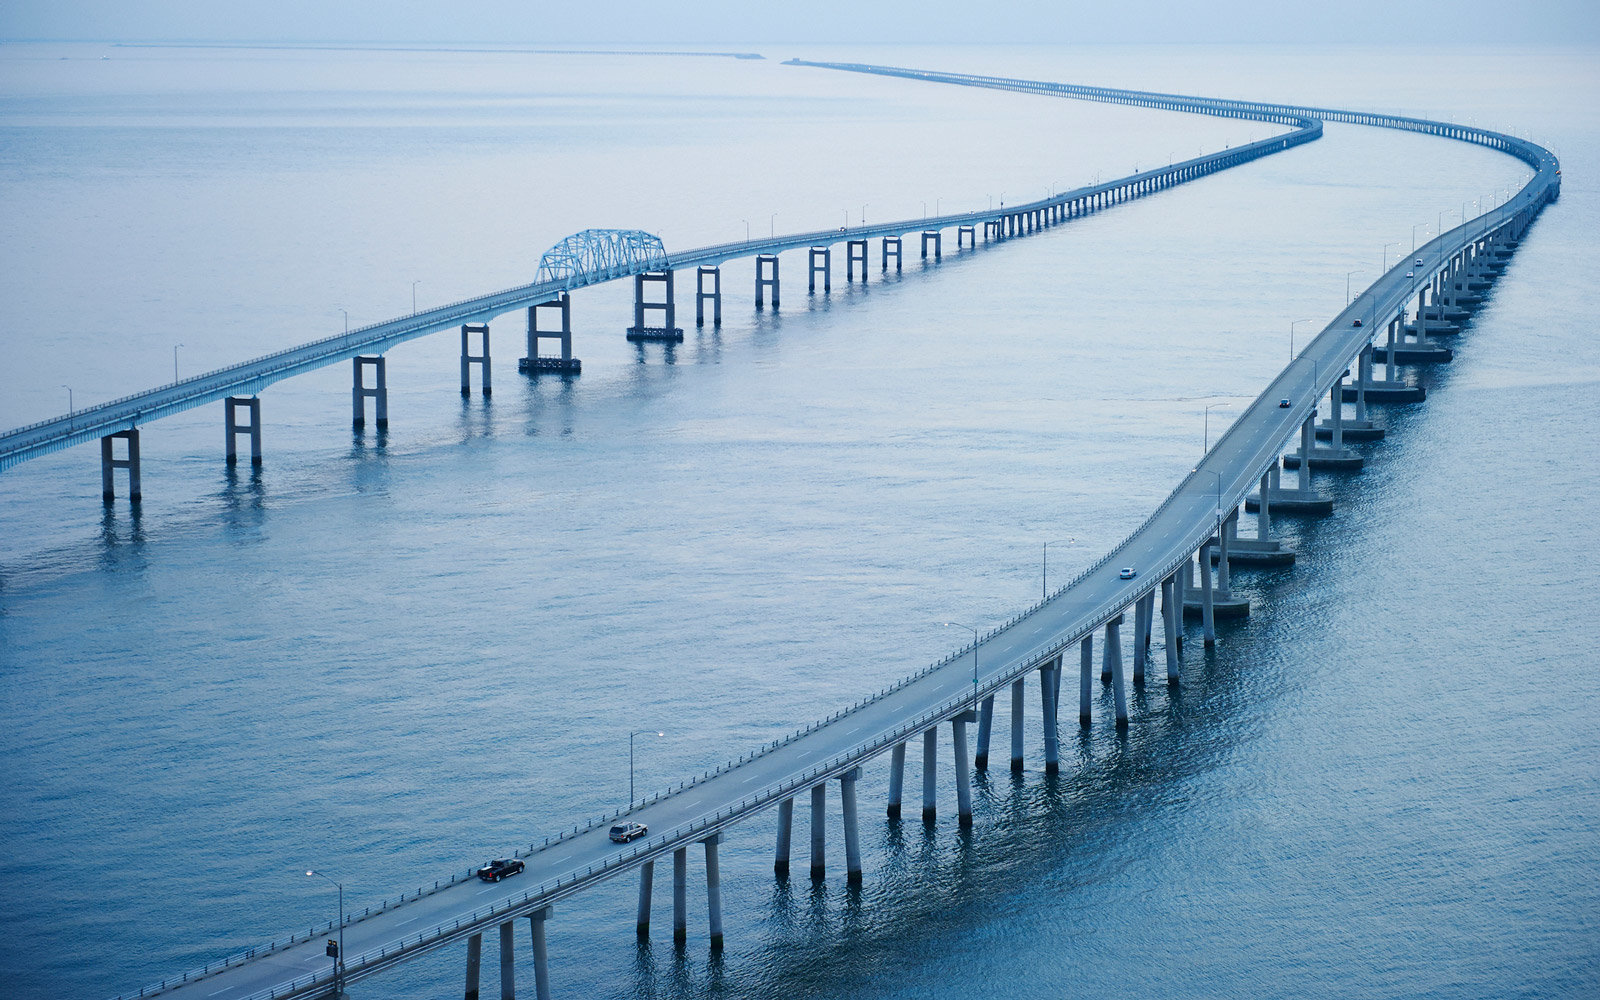 Aerial of the Chesapeake Bay Bridge Tunnel